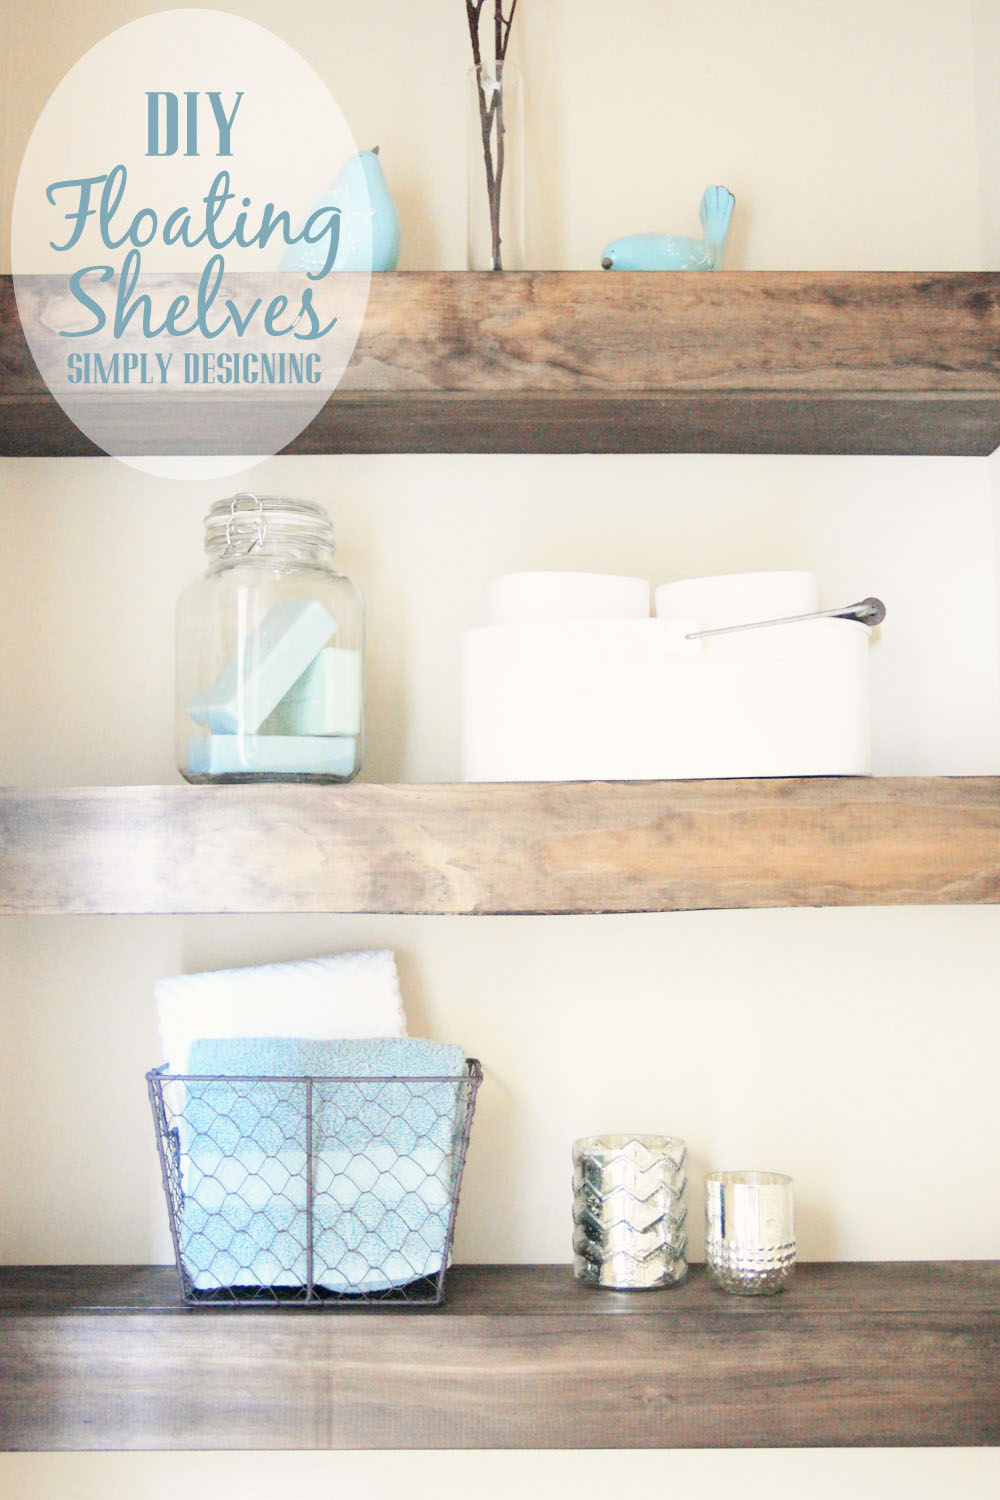 Hanging Wall Shelves For A Small Kitchen